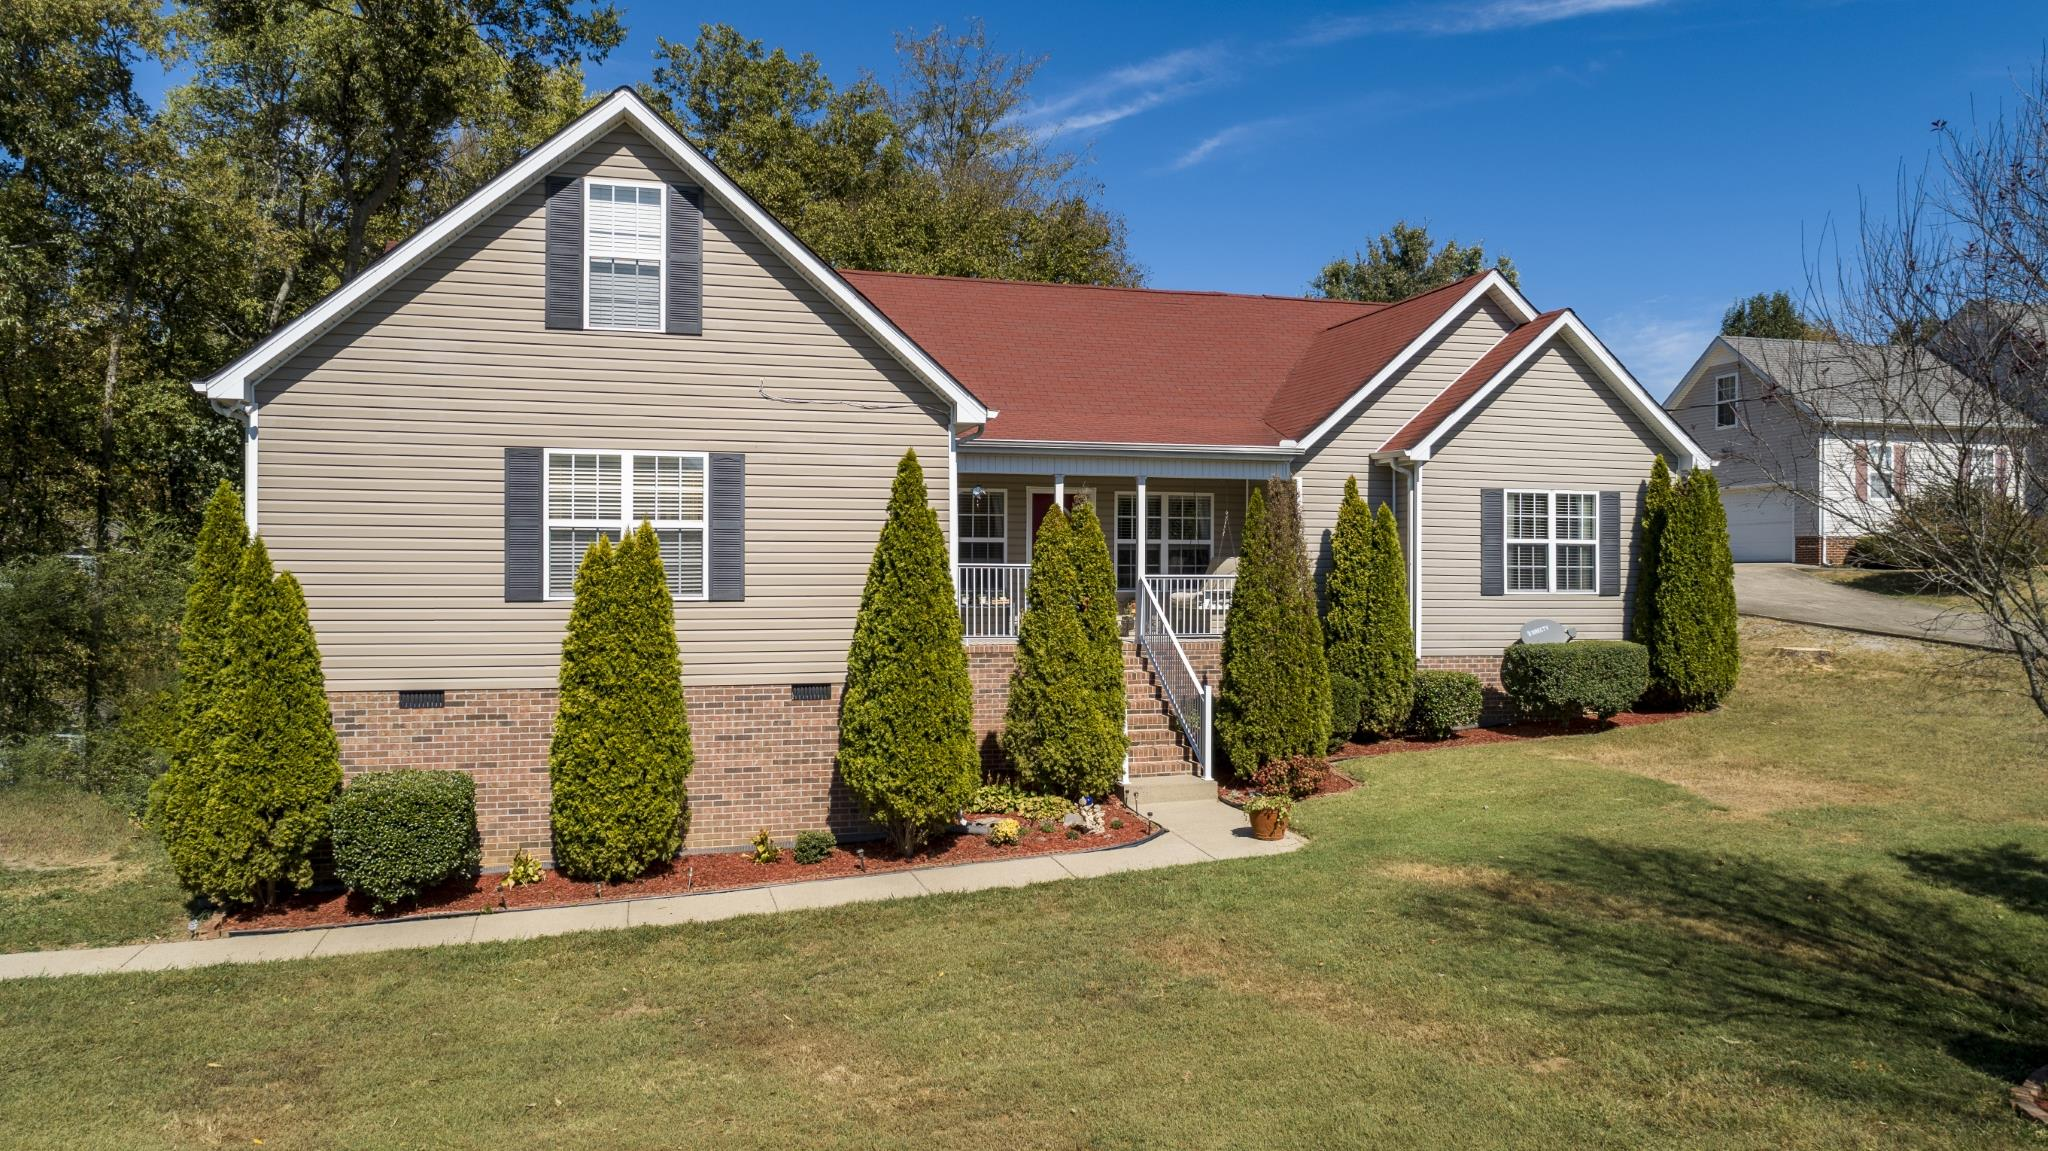 106 Matt Dr, Bell Buckle, TN 37020 - Bell Buckle, TN real estate listing